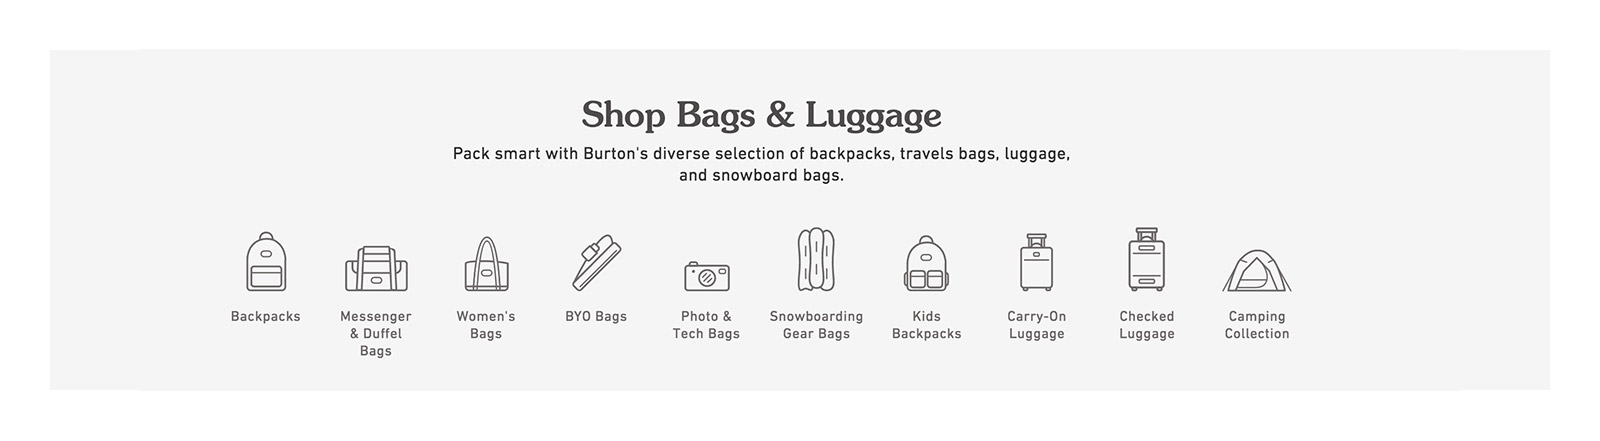 Burton-2017-Bags-Luggage-Icons.jpg